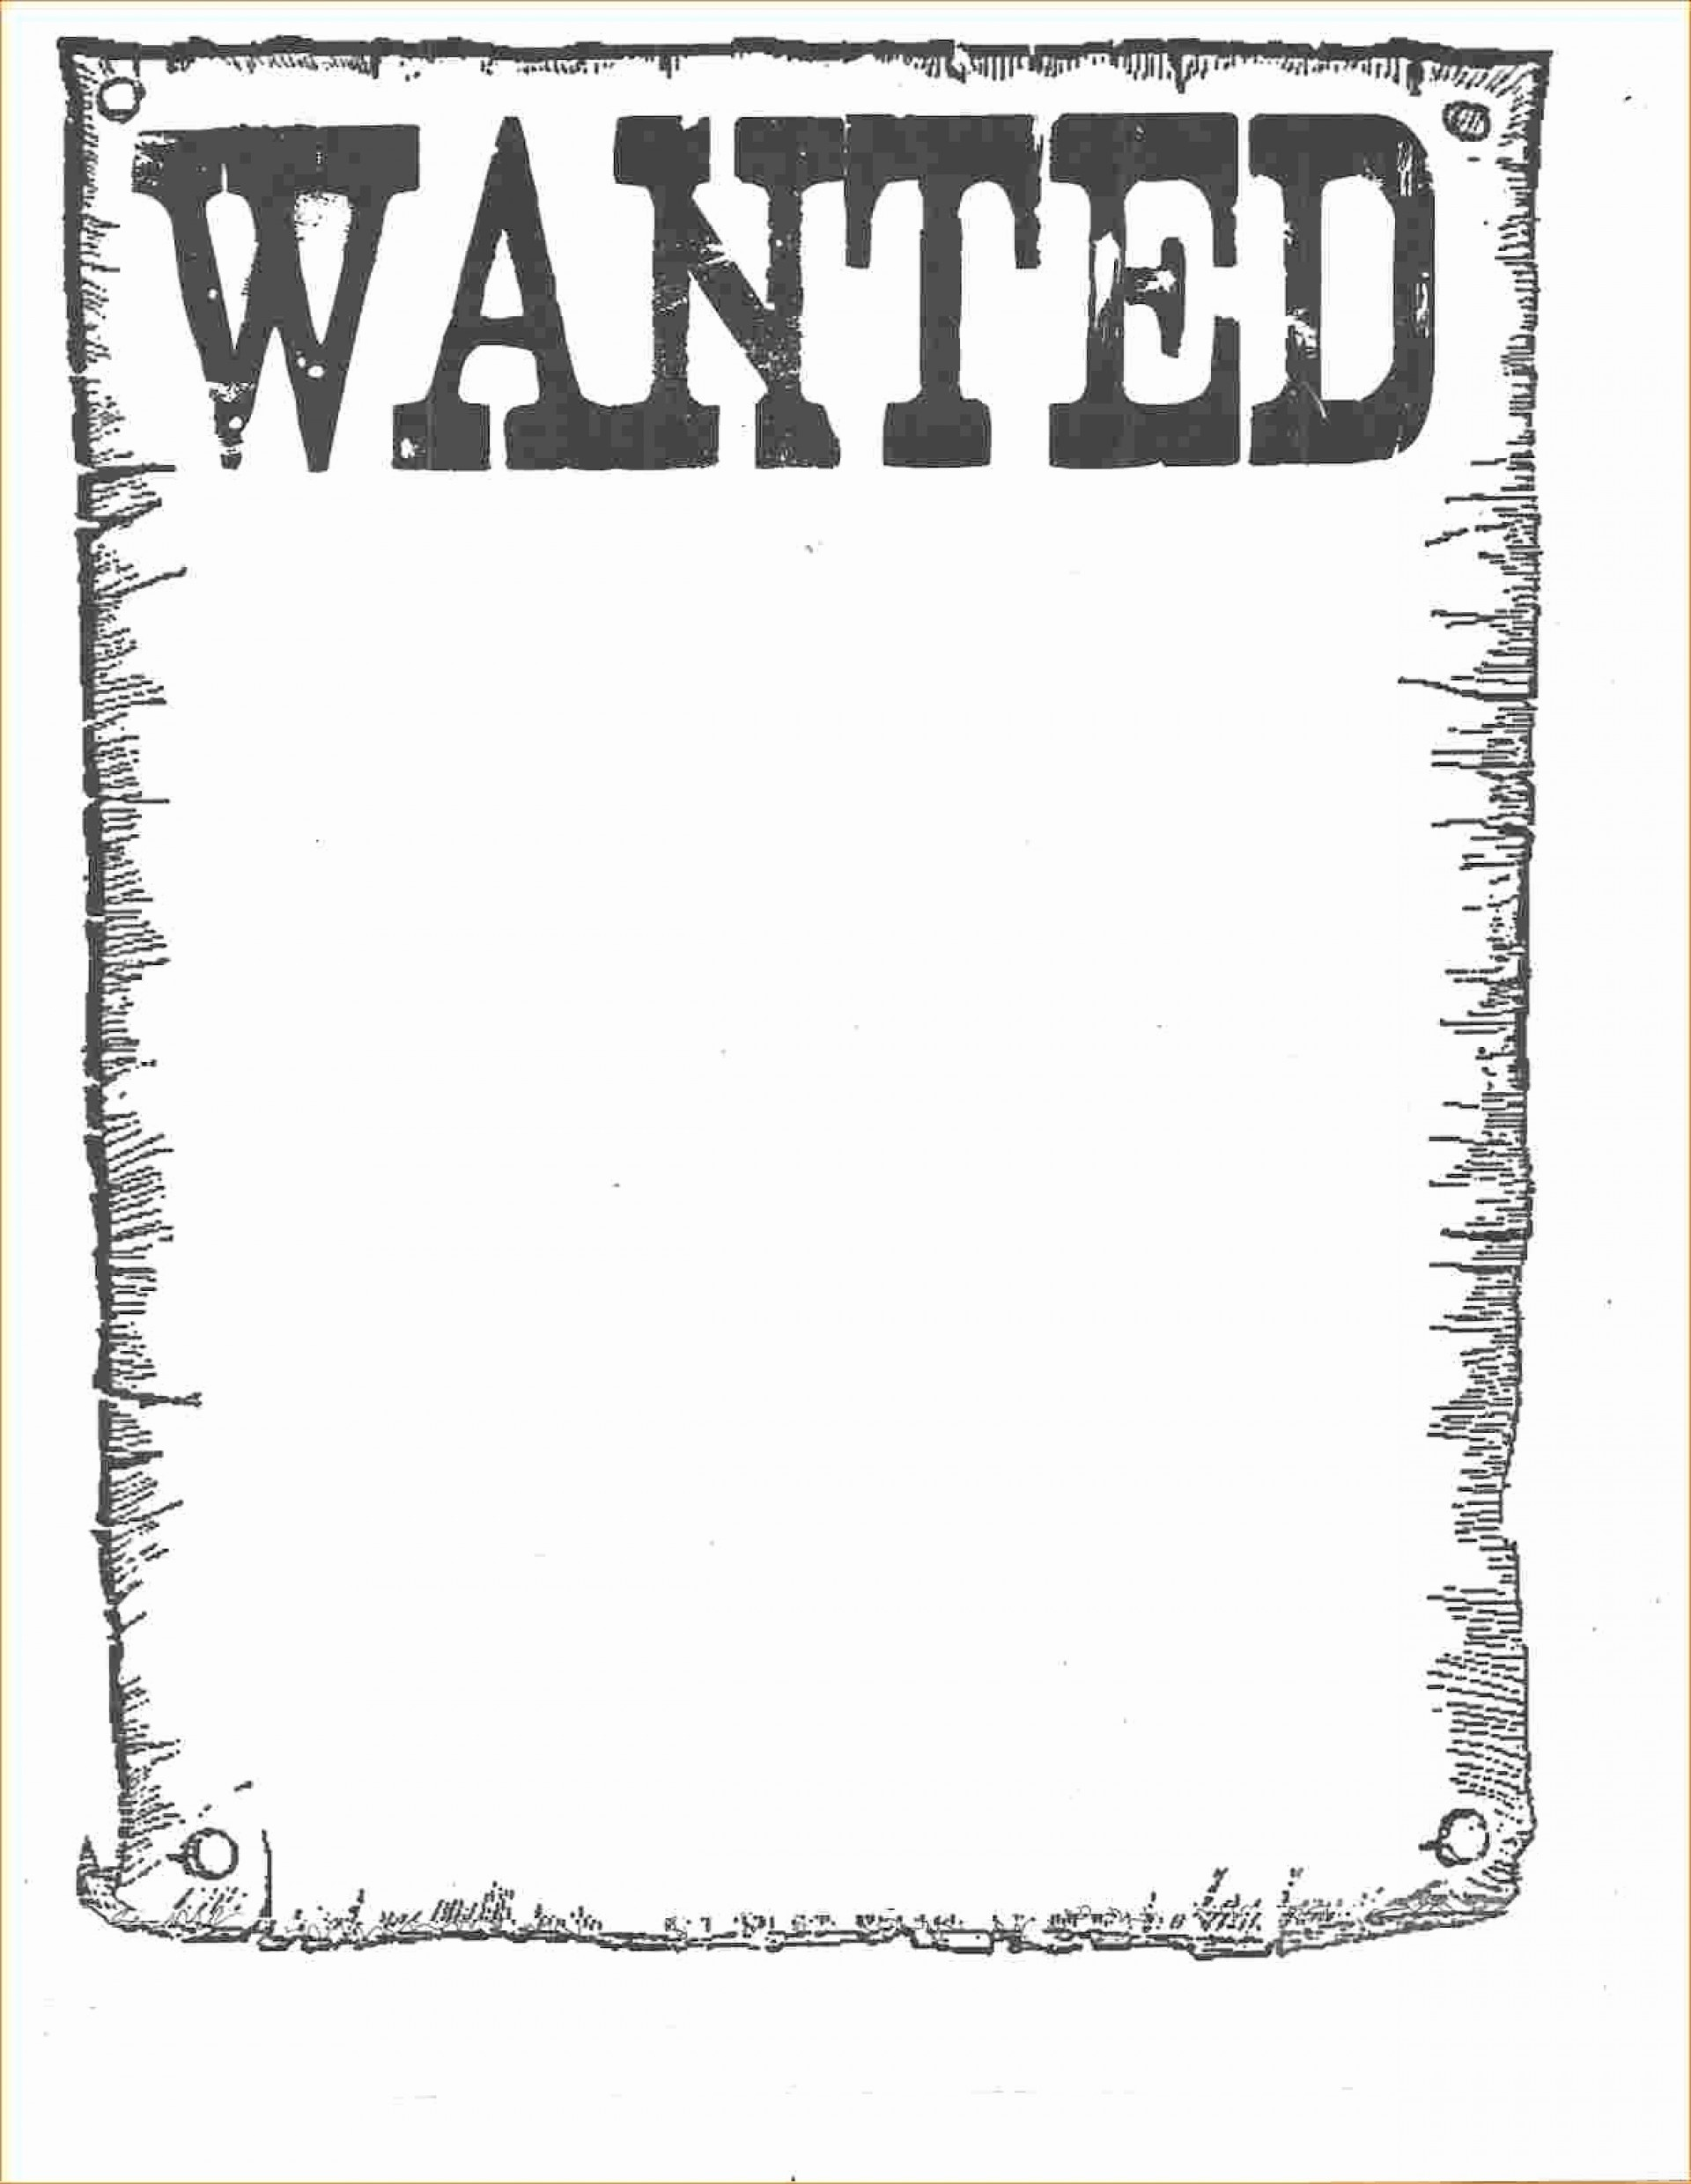 013 Template Ideas Wanted Poster Microsoft Word Free Printable - Wanted Poster Printable Free